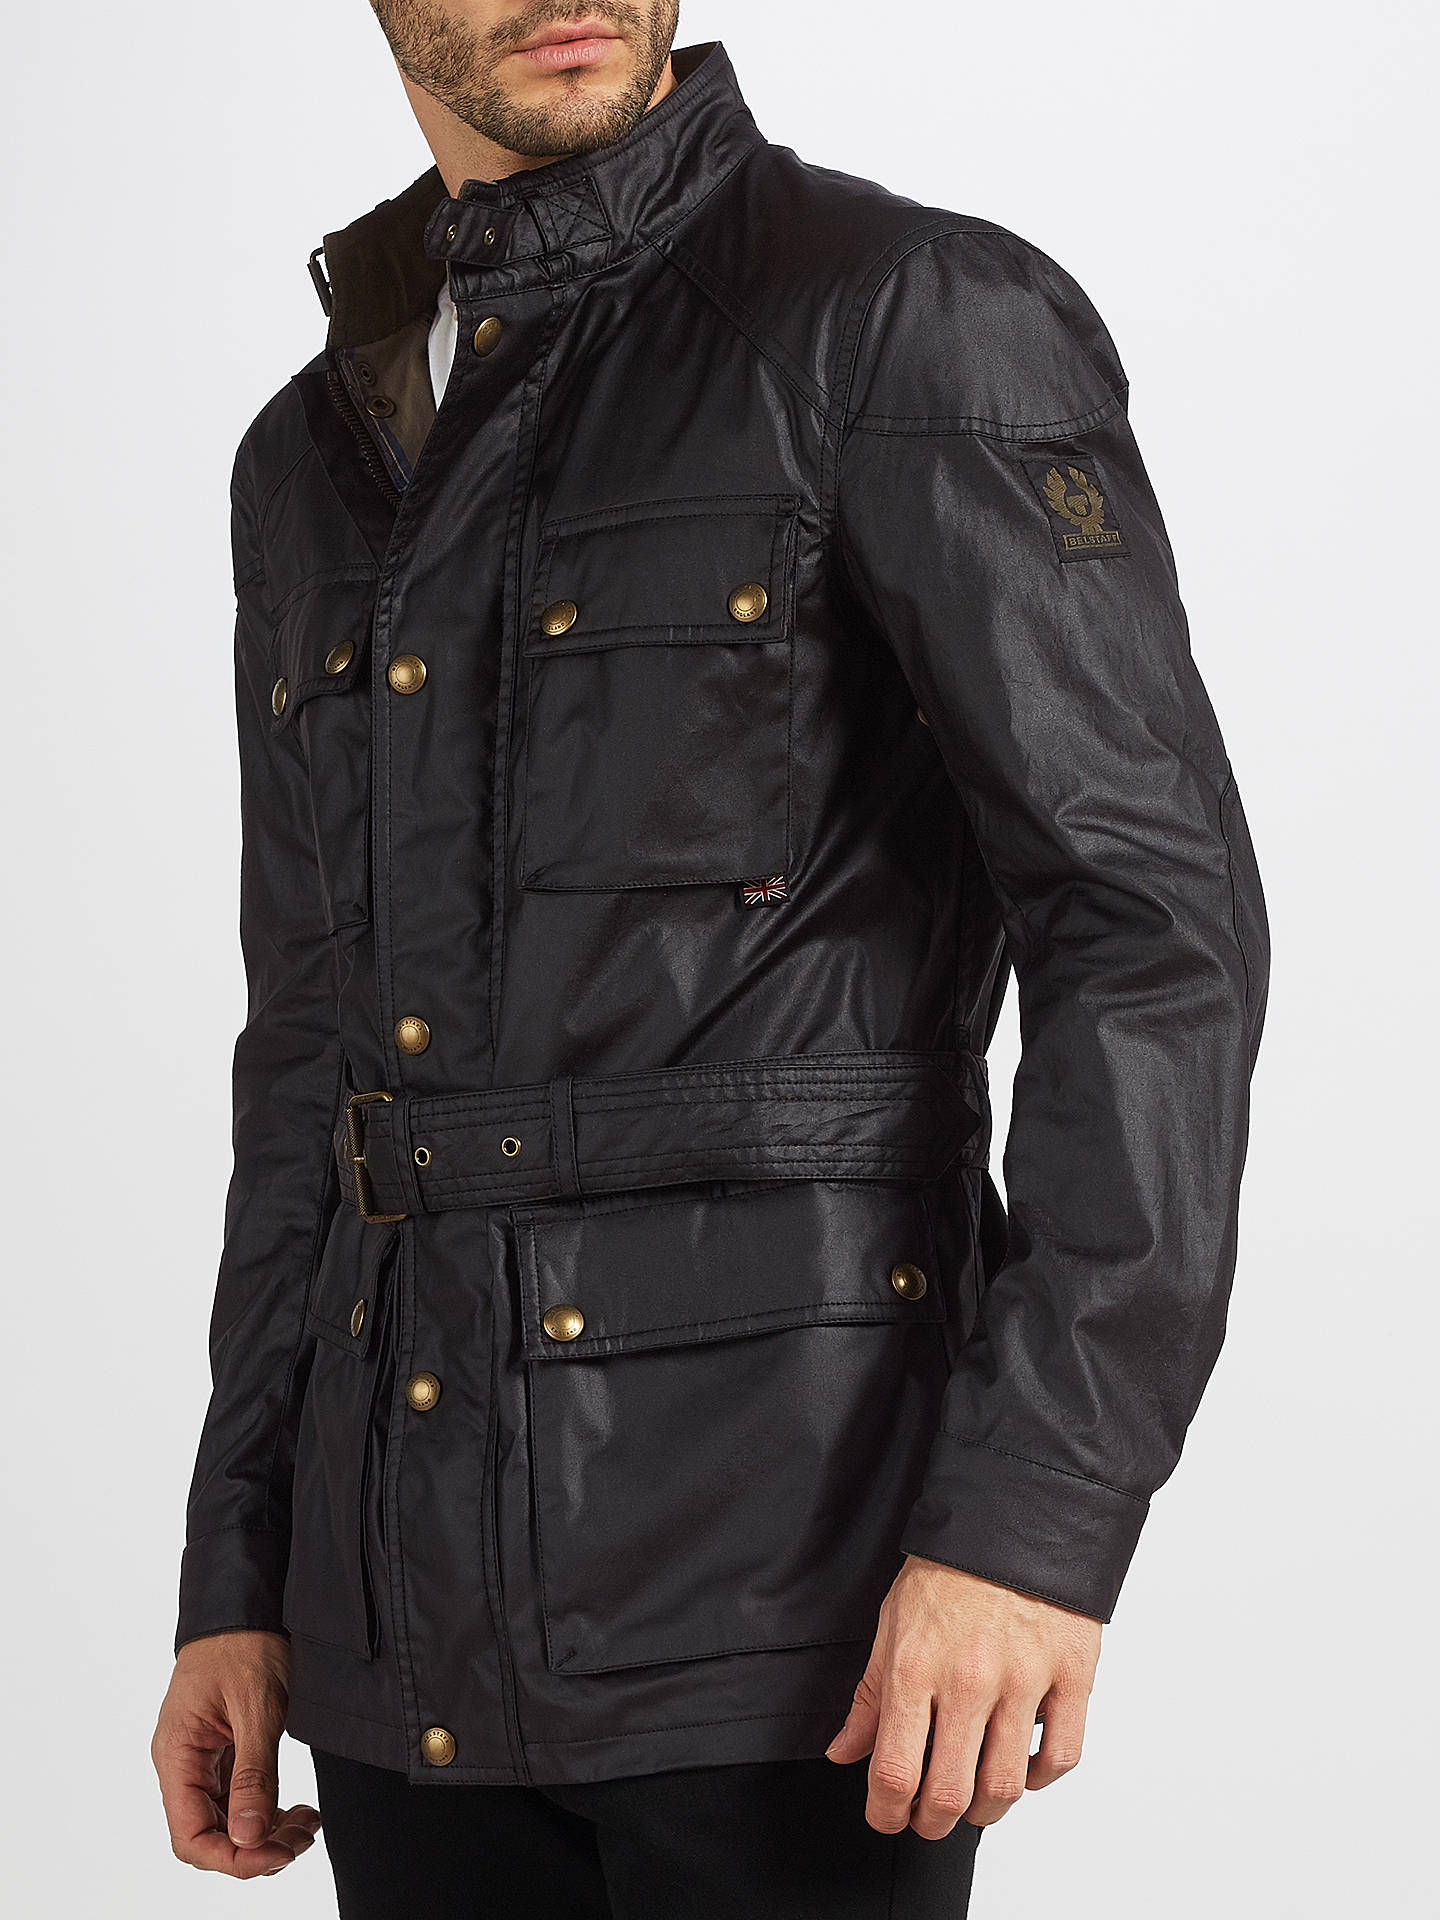 eb42f79e03 Buy Belstaff Roadmaster 4 Pocket Wax Jacket, Black, 48L Online at  johnlewis.com ...